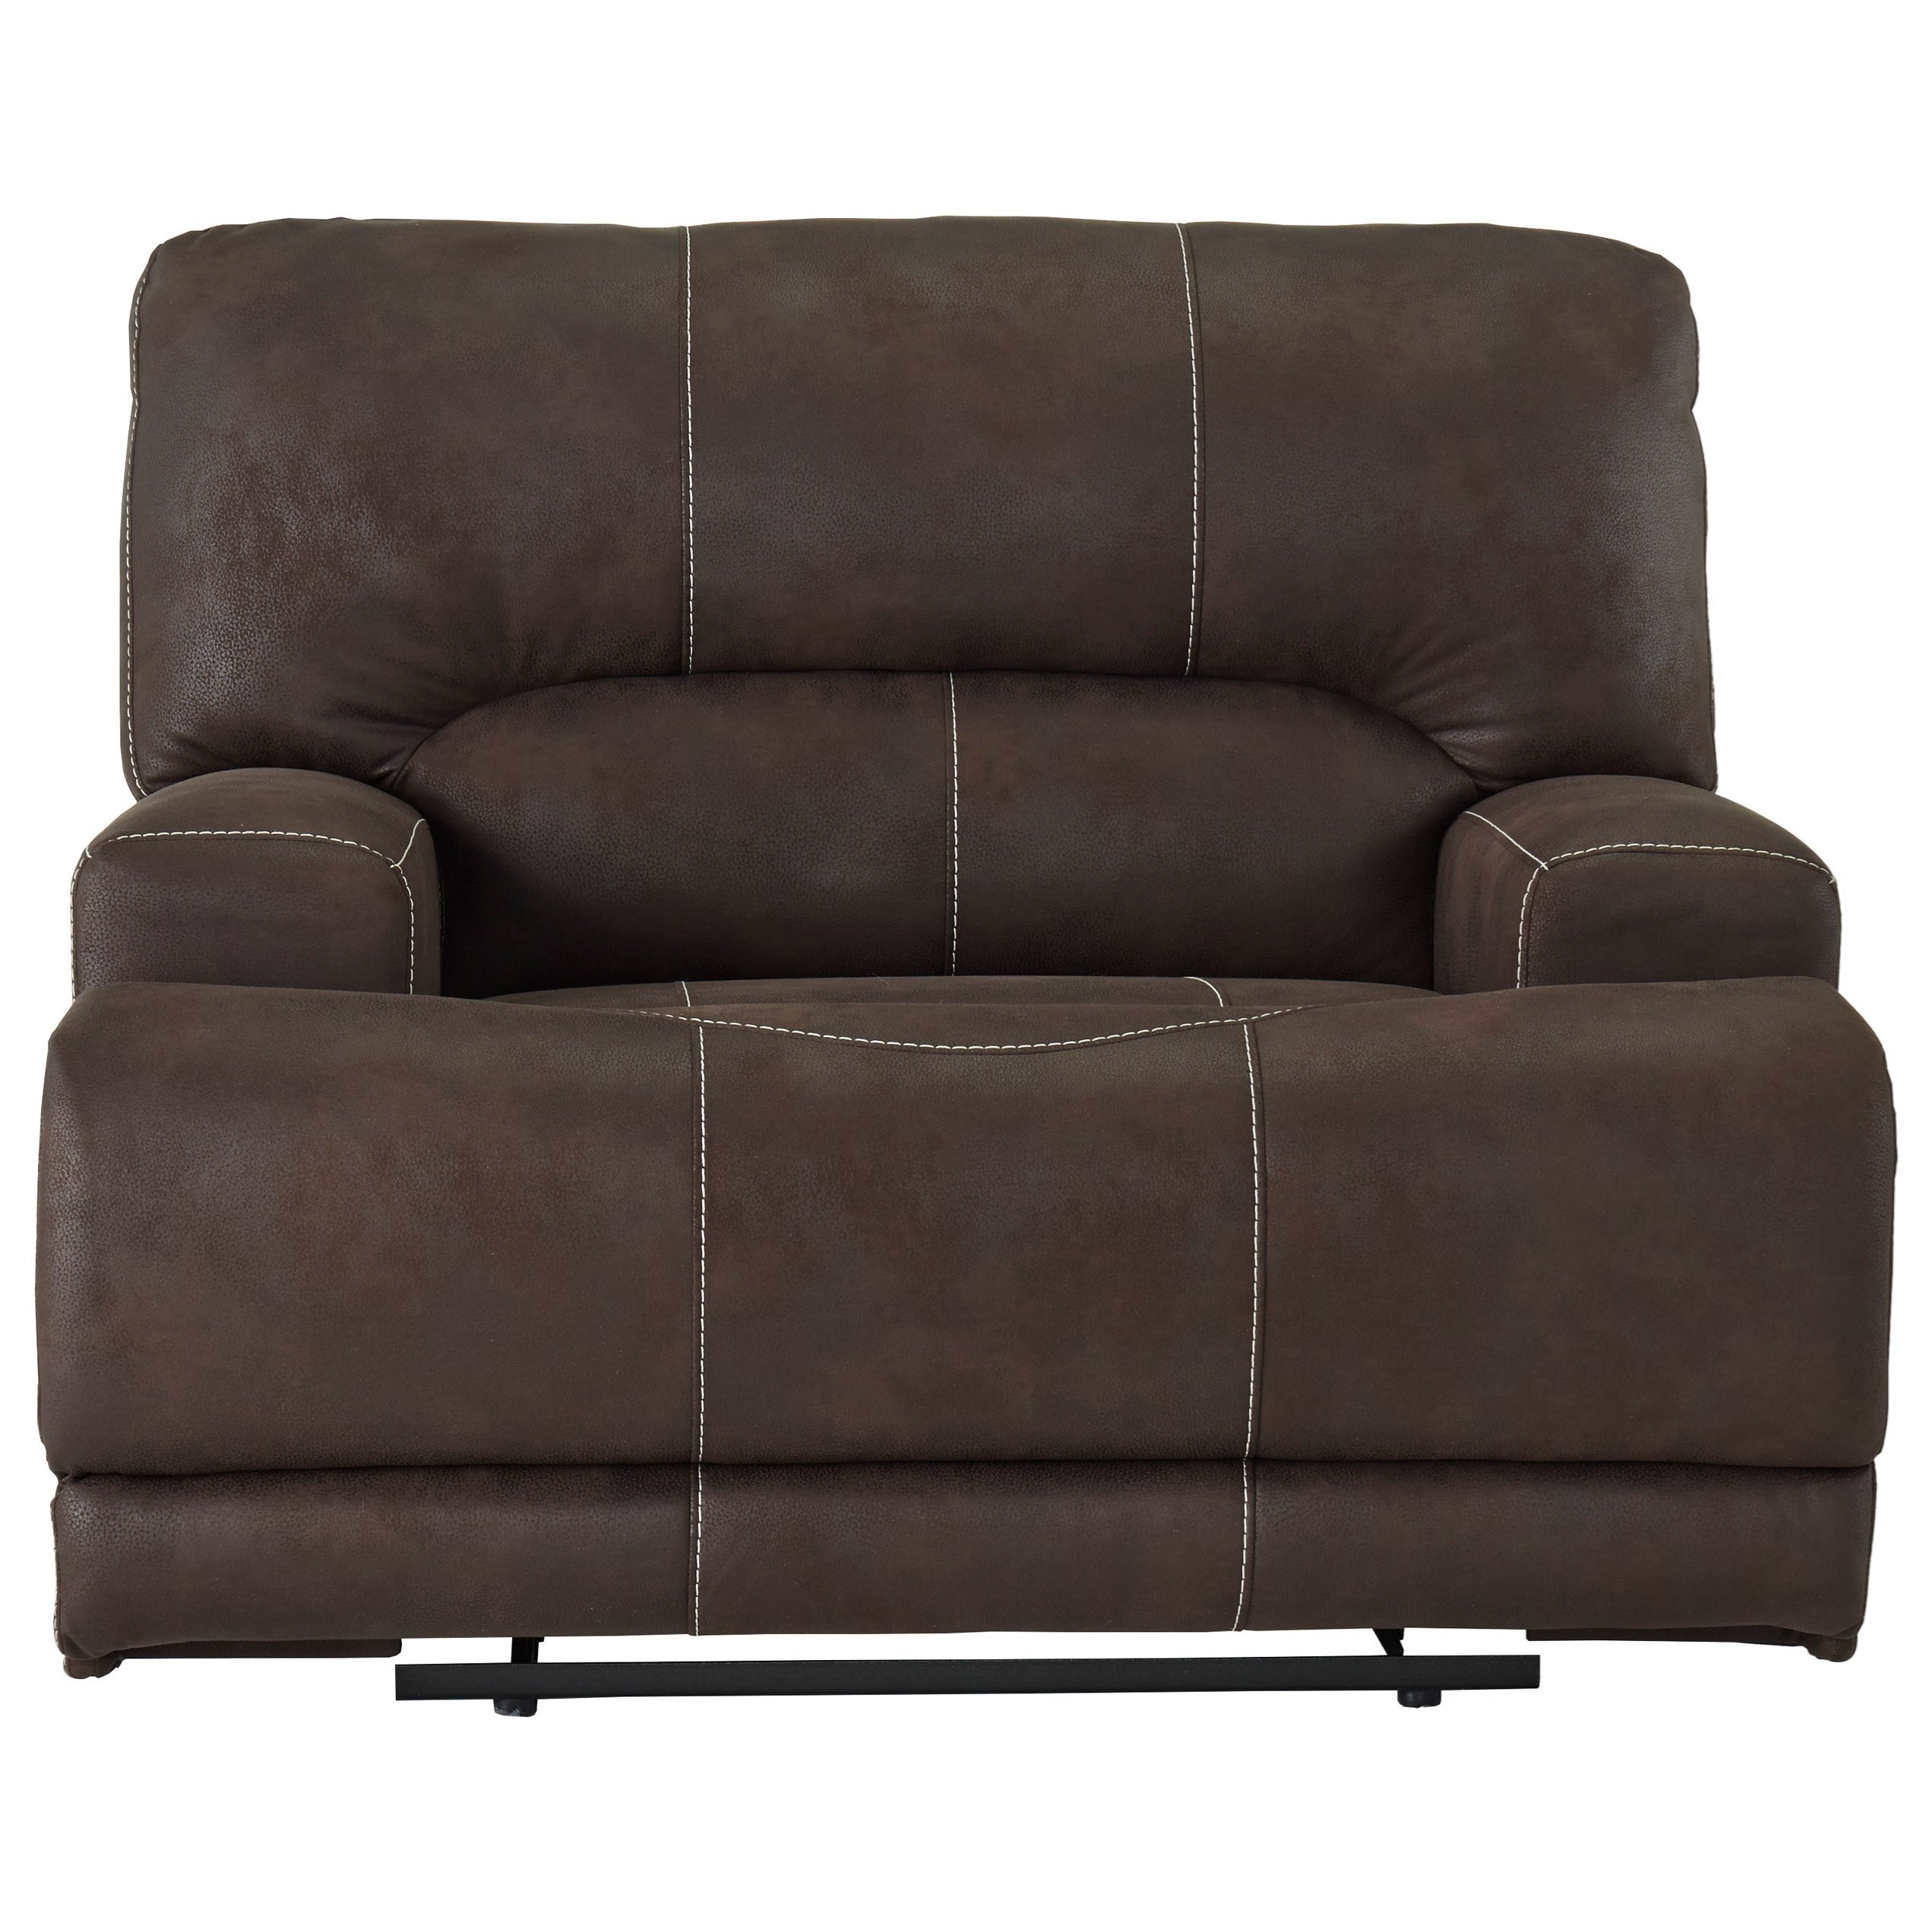 Kitching Wide Seat Power Recliner by Signature Design by Ashley at Home Furnishings Direct